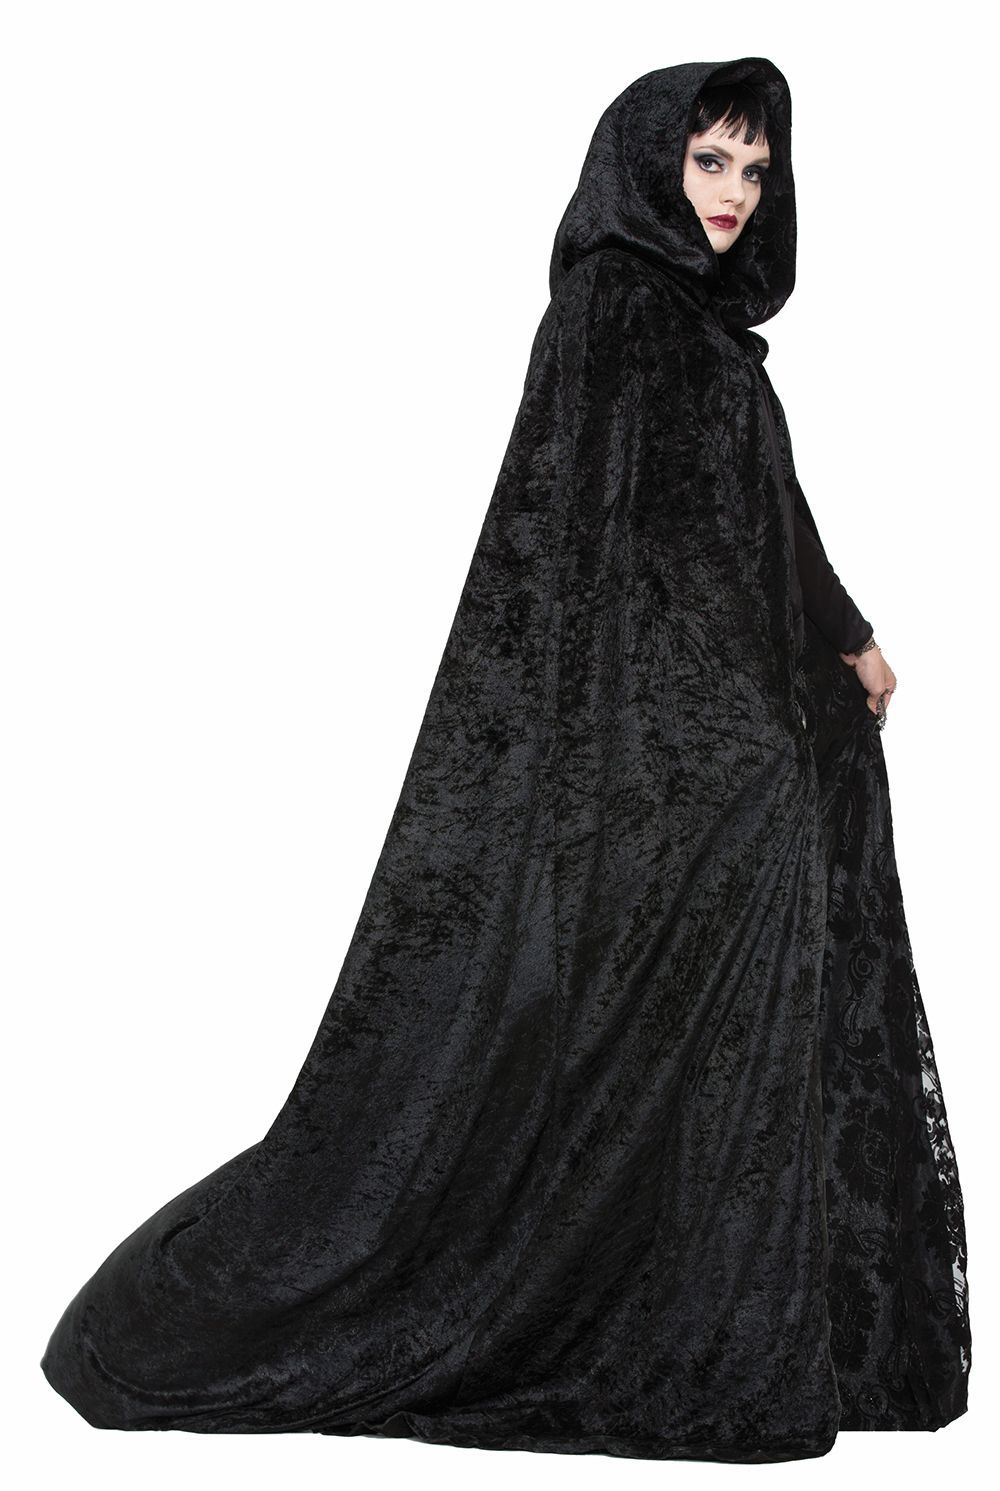 6c15d75028 Wrap yourself in fashionable darkness with these wicked Halloween ...